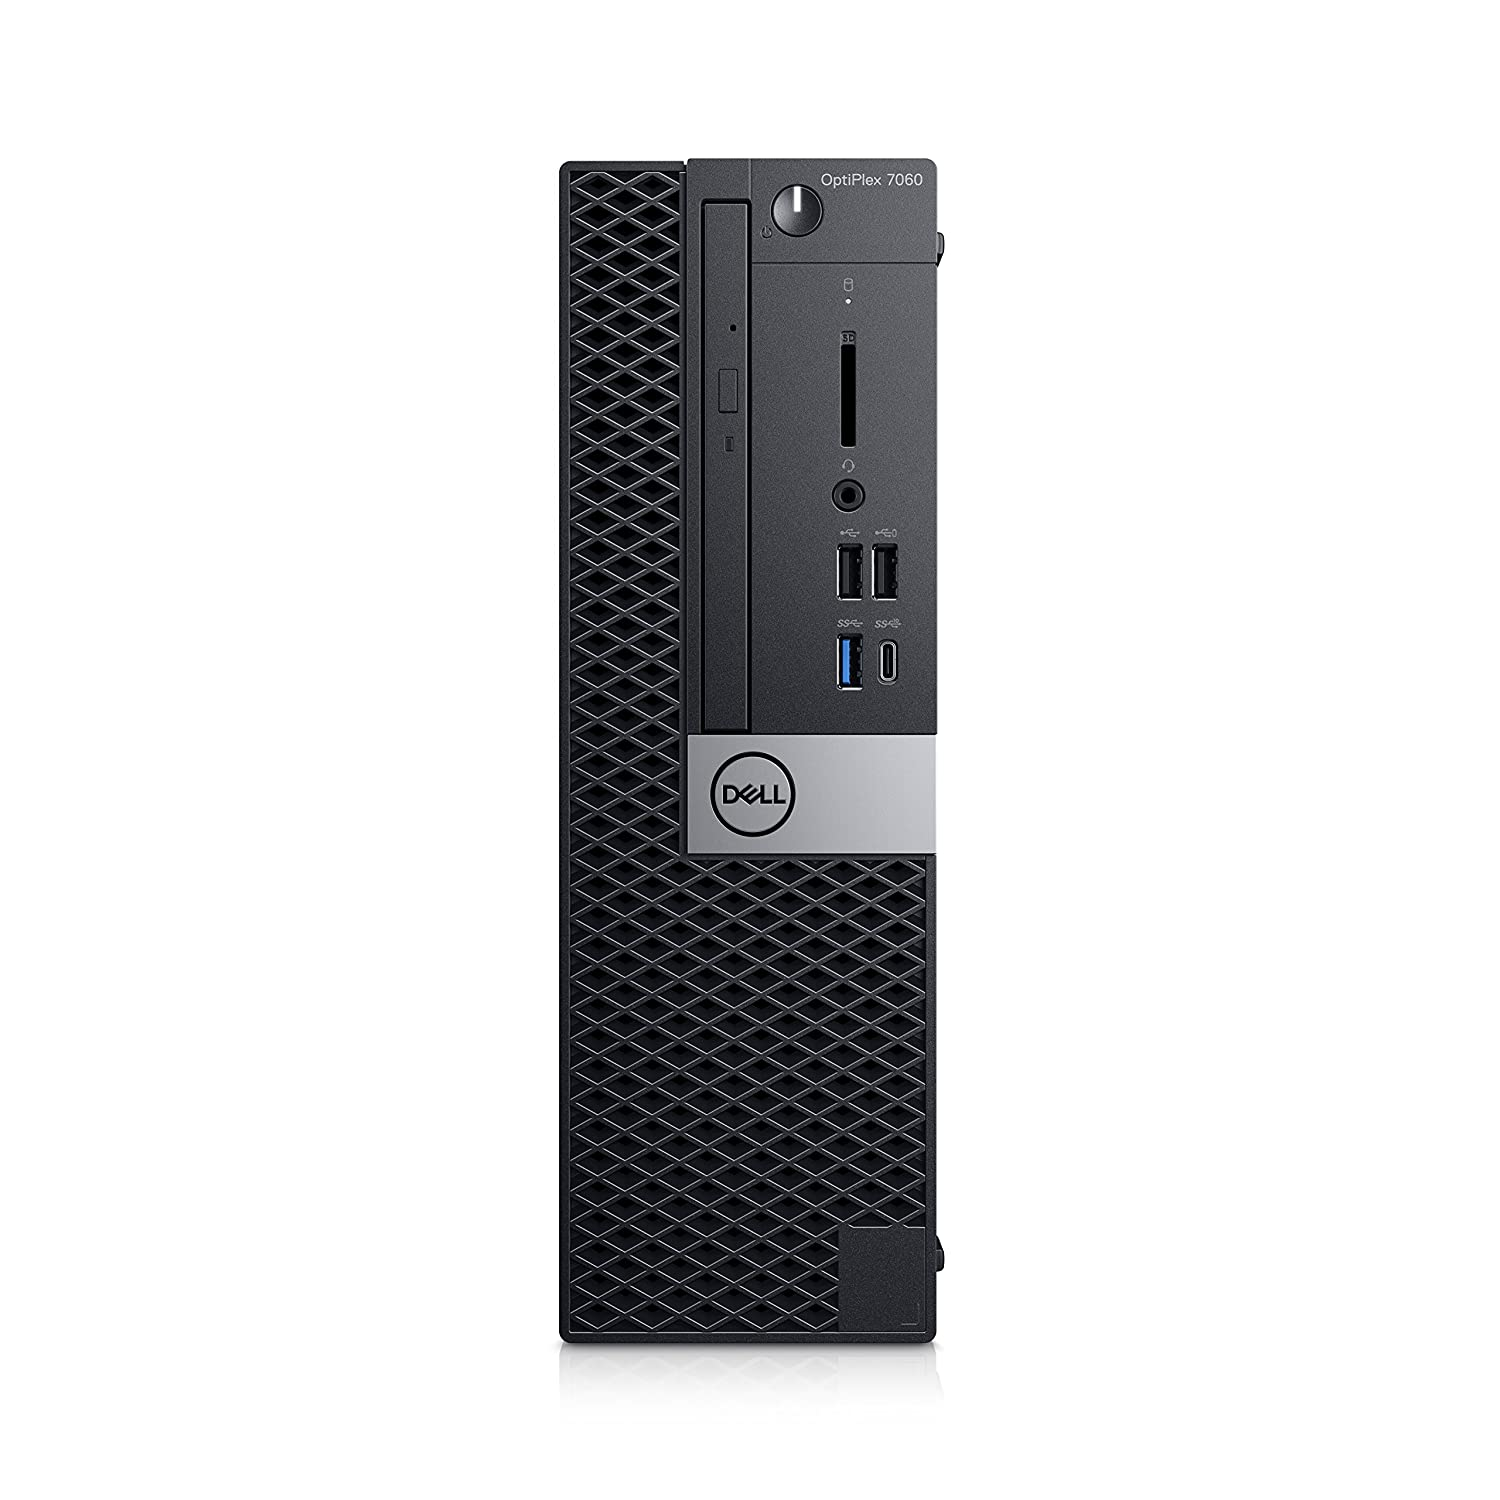 Dell OptiPlex 7060, 3,2 GHz, 8ª Generación de procesadores Intel Core i7, 8 GB, 256 GB, DVD RW, Windows 10 Pro